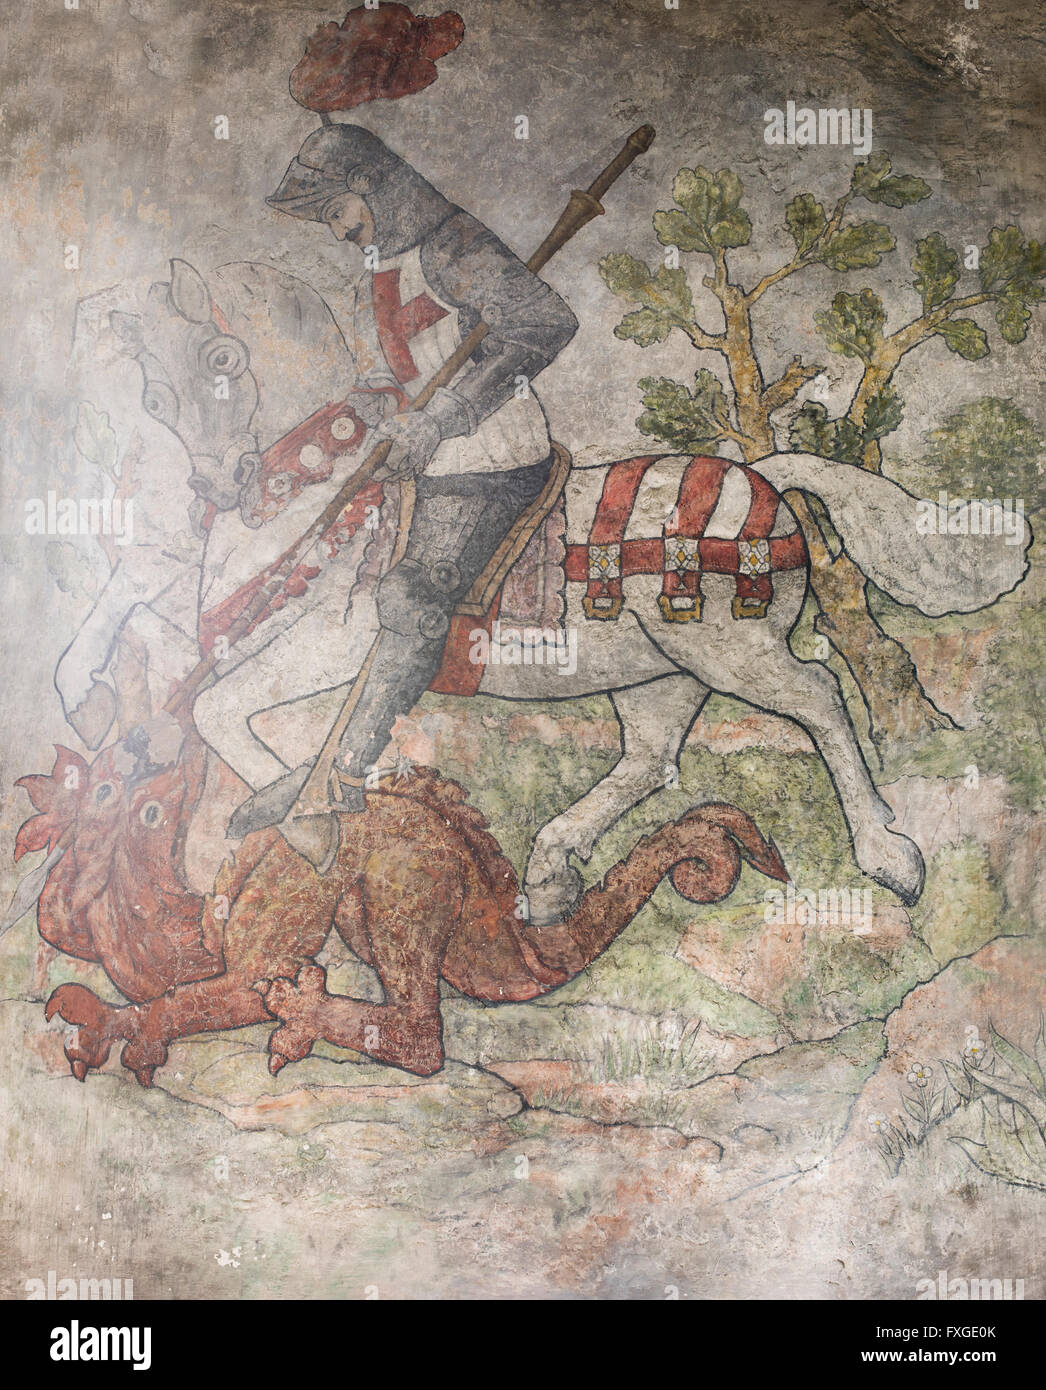 The restored medieval wall painting of St. George slaying the dragon, St. Gregory's Church, Bedale, North Yorkshire, Stock Photo